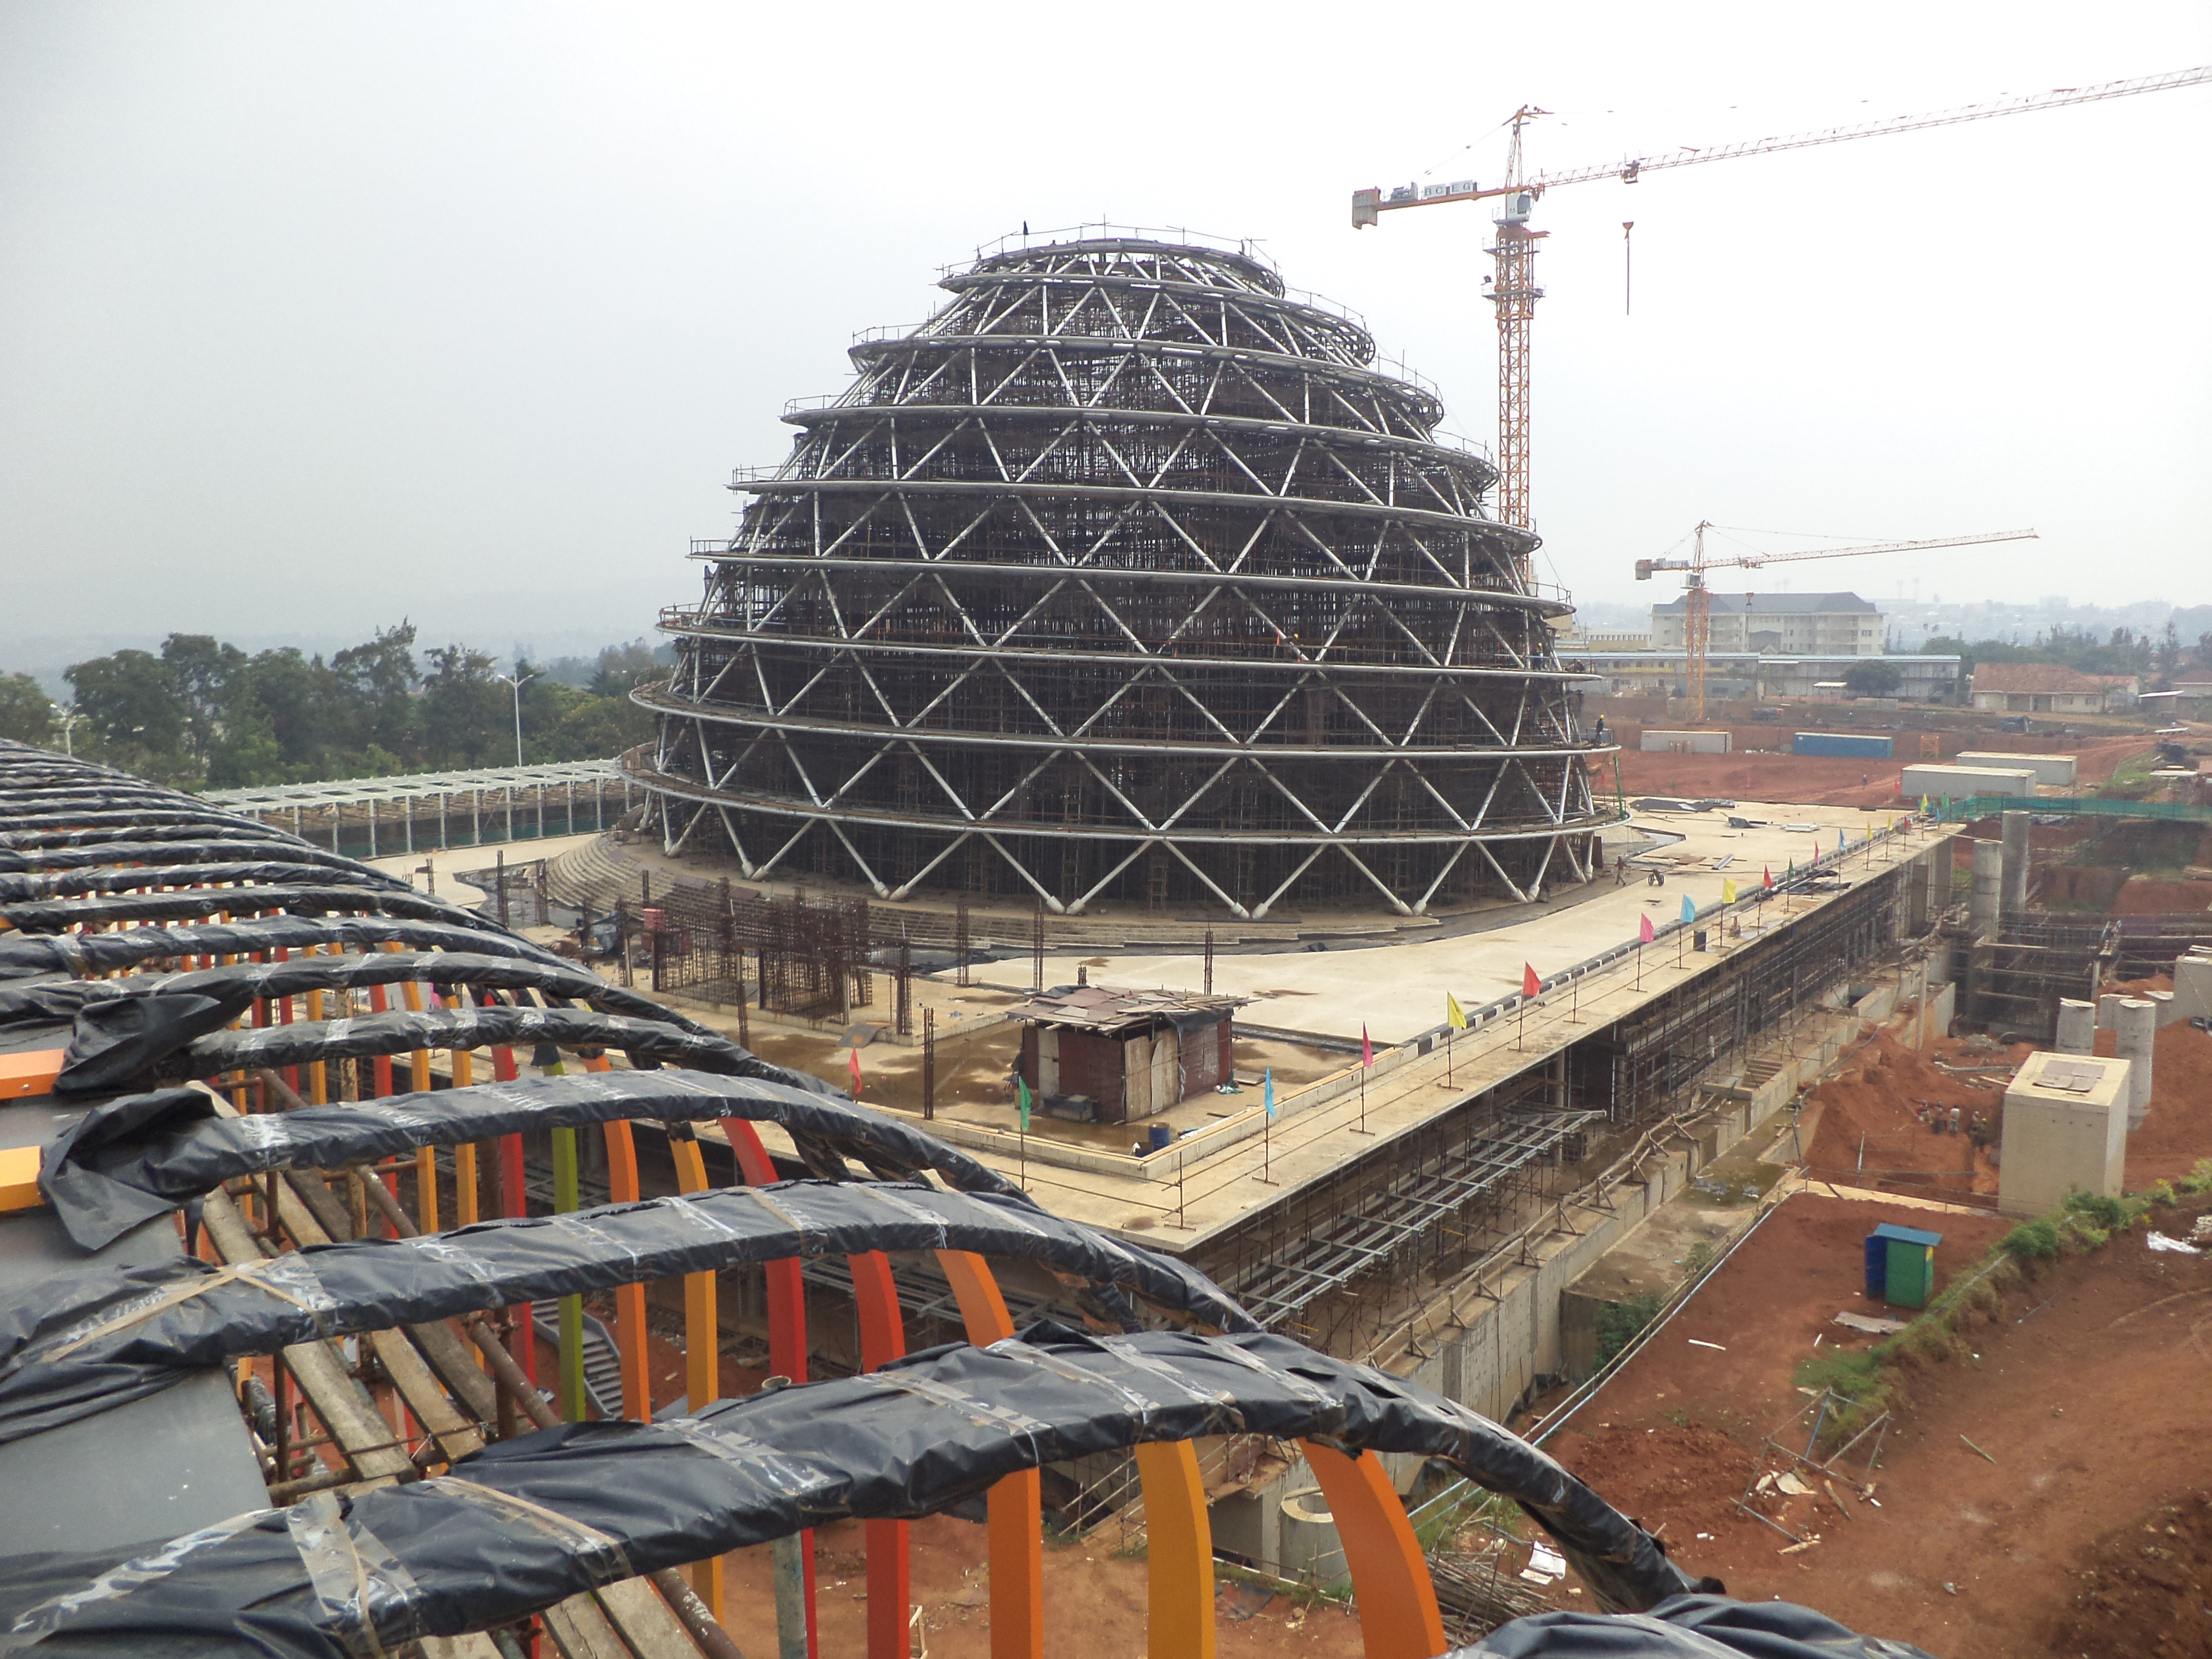 kigali convention center under construction 7